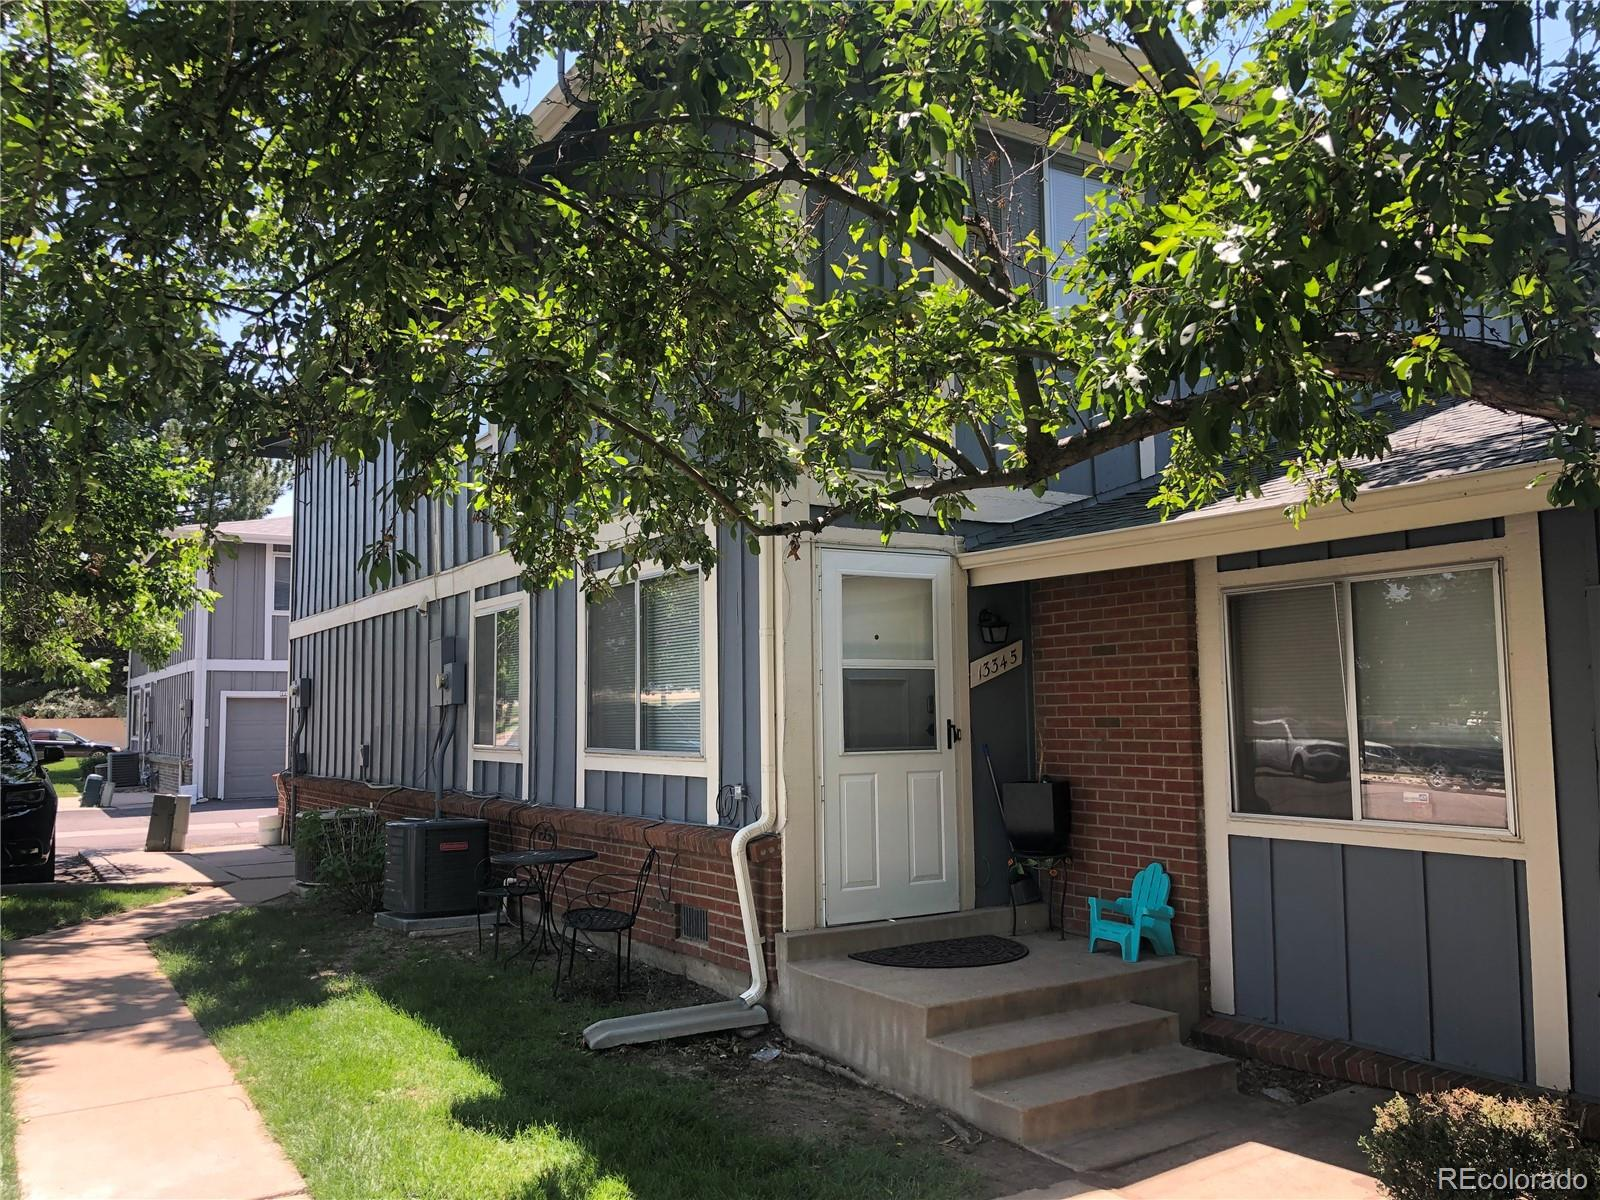 PRICE REDUCED! Seller is motivated,  Great unit, totally remodeled, lost of upgrades, this beautiful townhome is waiting for the first time home buyer, The kitchen also boast  a pantry and laundry area, There is a new water heater and the AC is only 2 years old, bring your buyers today and make this your home. Sellers are saying that the HOA fee went down from $300 a month to $290 a month buyers and buyers agent to verefied this info.